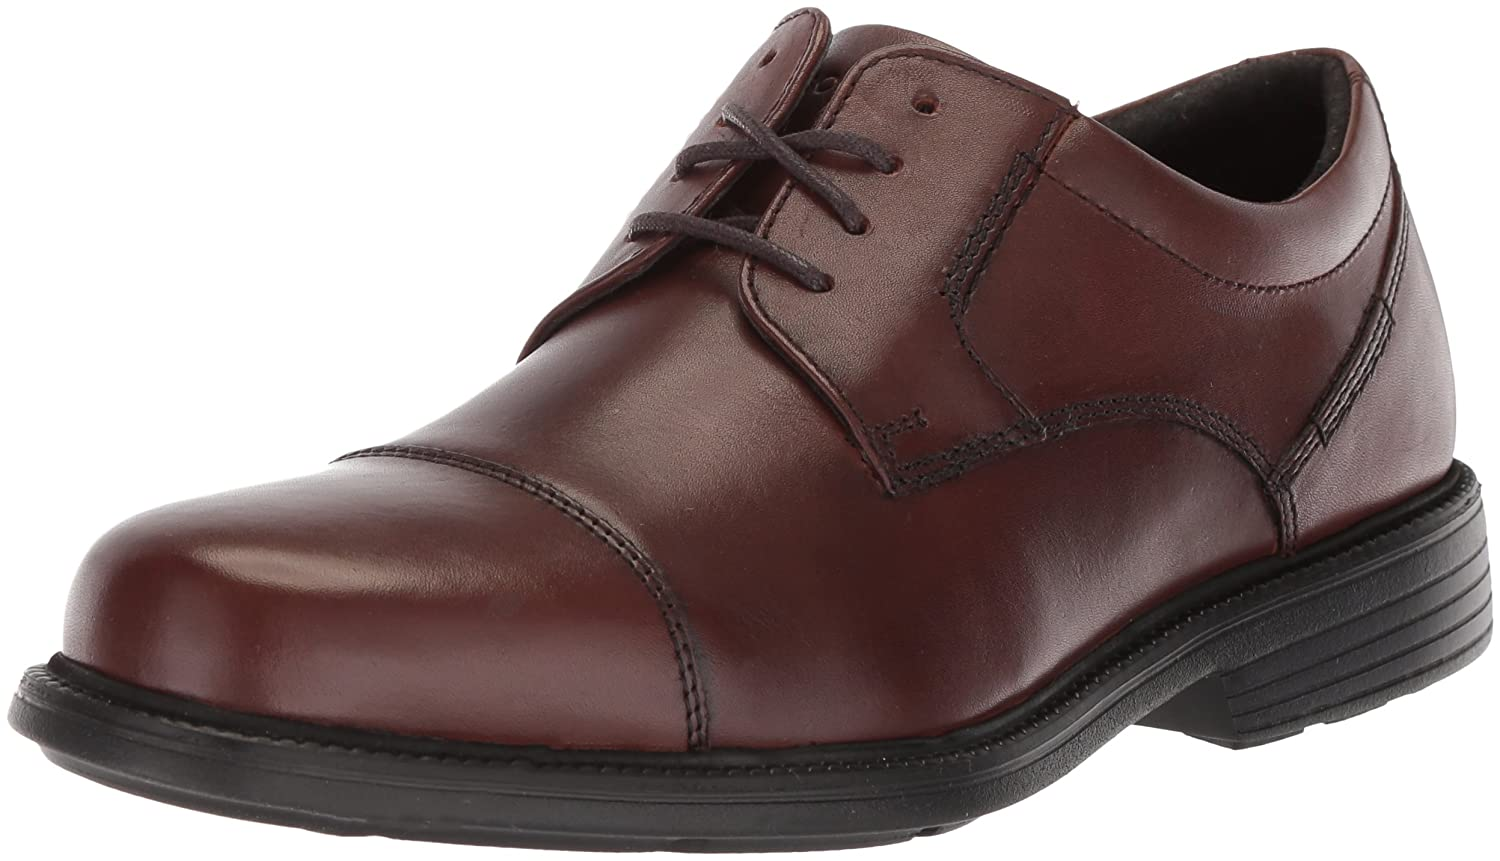 Rockport Men's City Stride Cap Toe Oxford, Tan, 12 M US